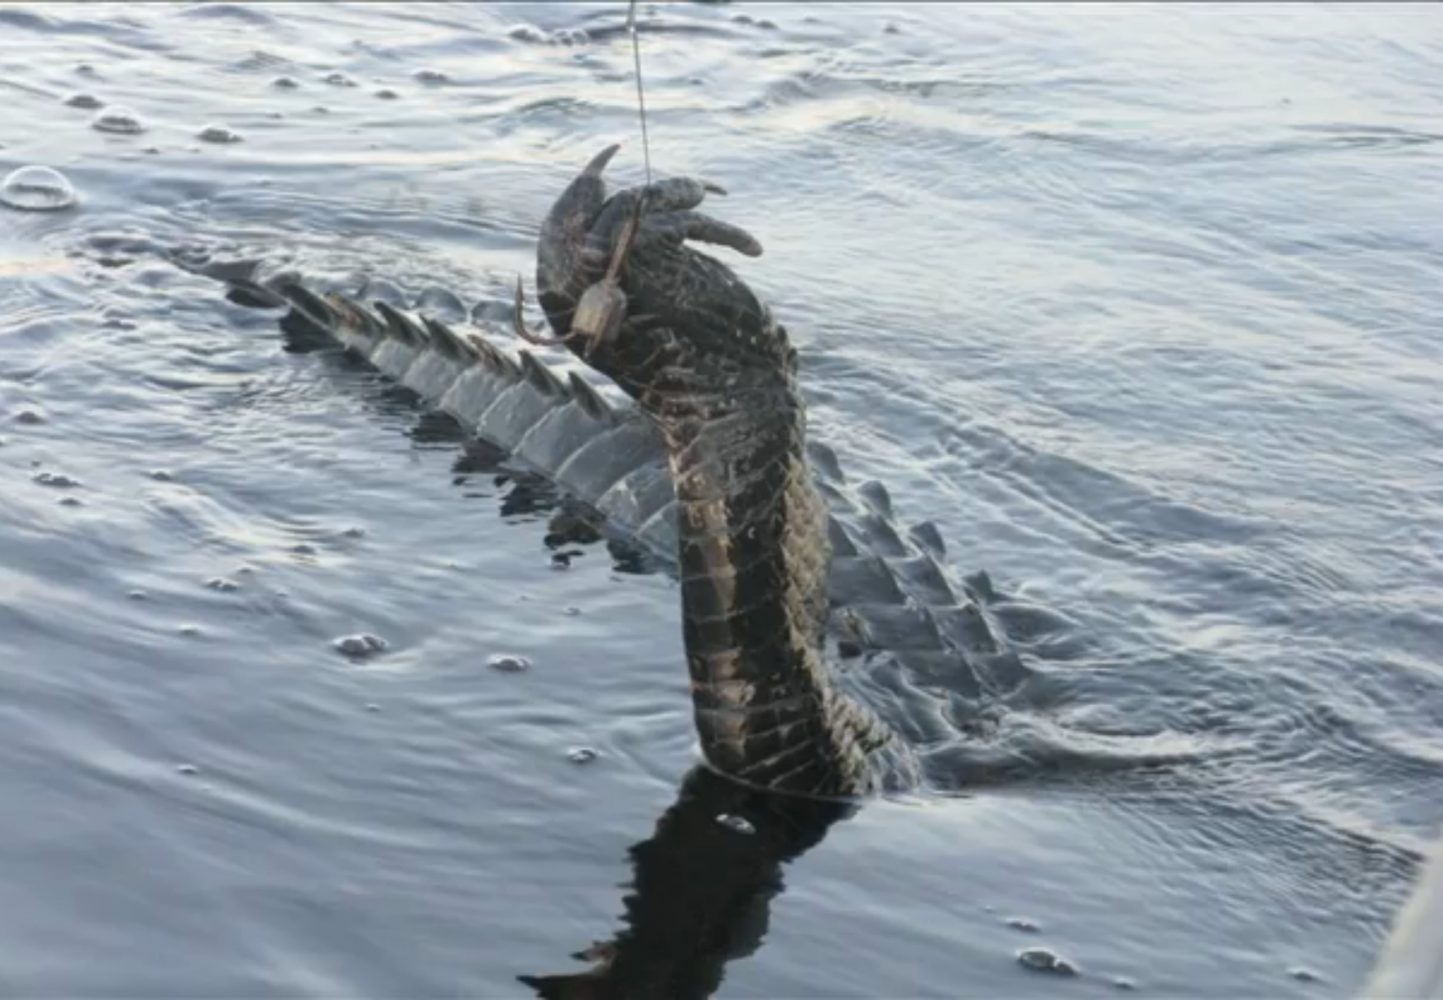 The gator has been caught, and the hook is in its leg.